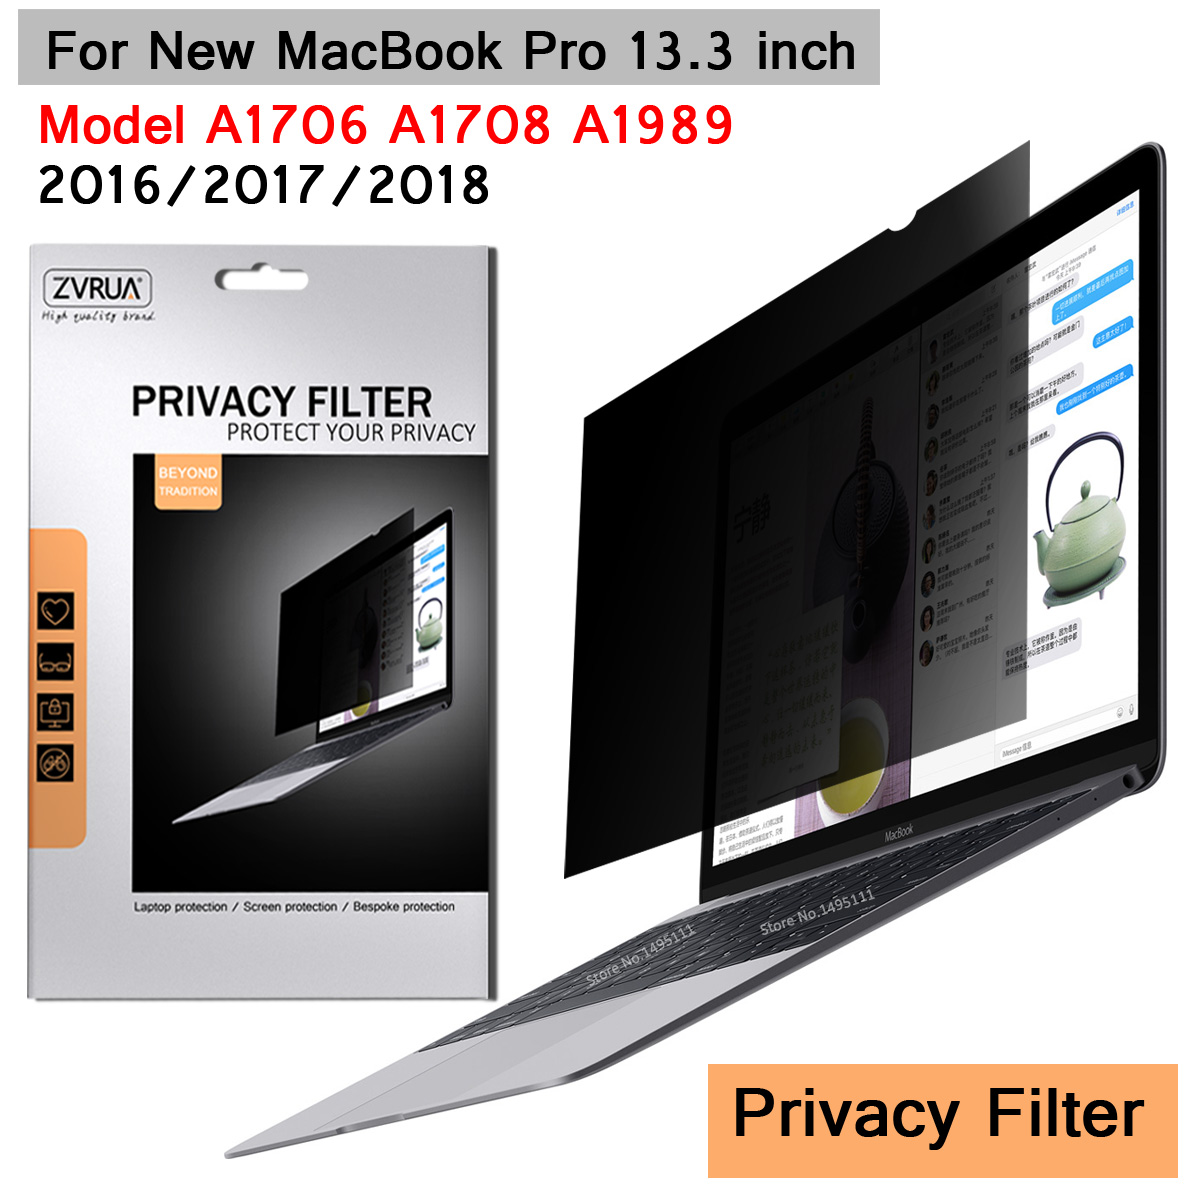 For 2016/2017/2018 New MacBook Pro 13.3 Inch With Touch Bar (299mm*195mm) Privacy Filter Anti Spy PET Screens Protective Film